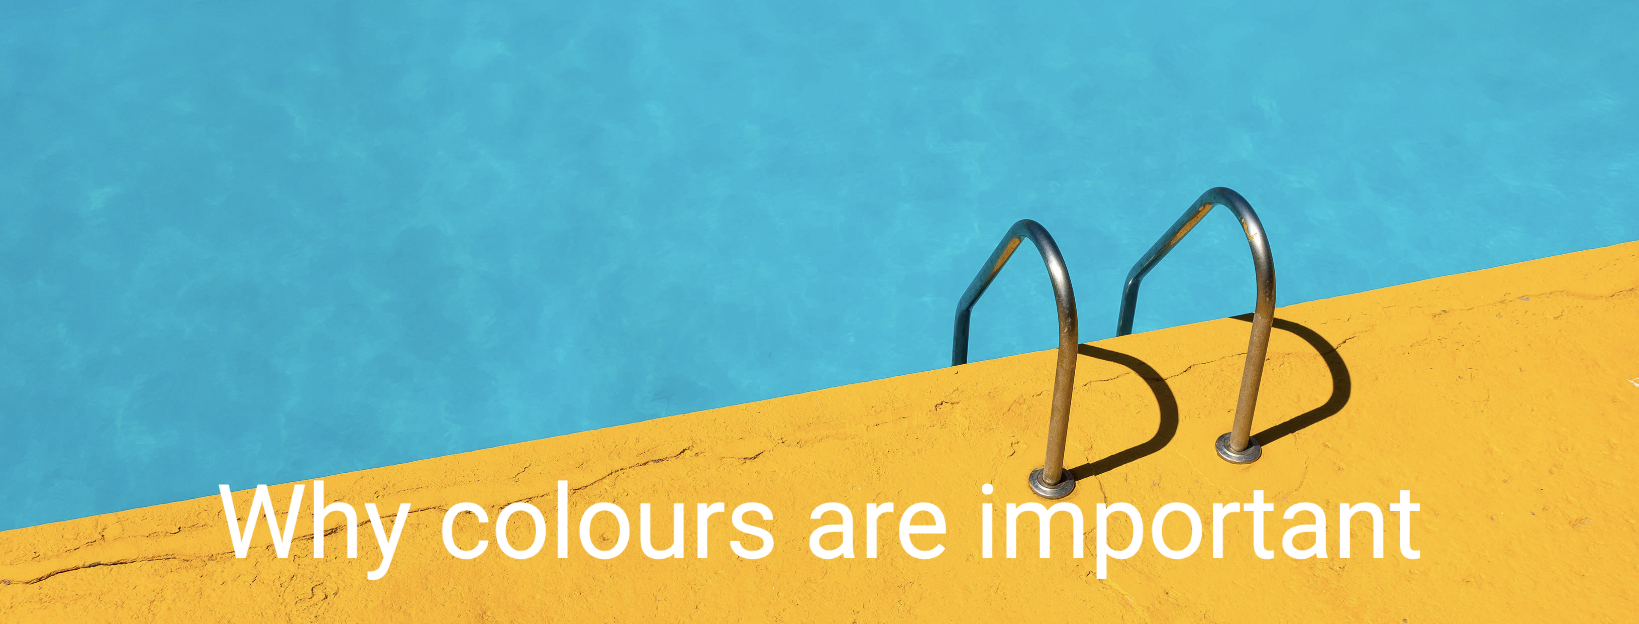 Why colours are important